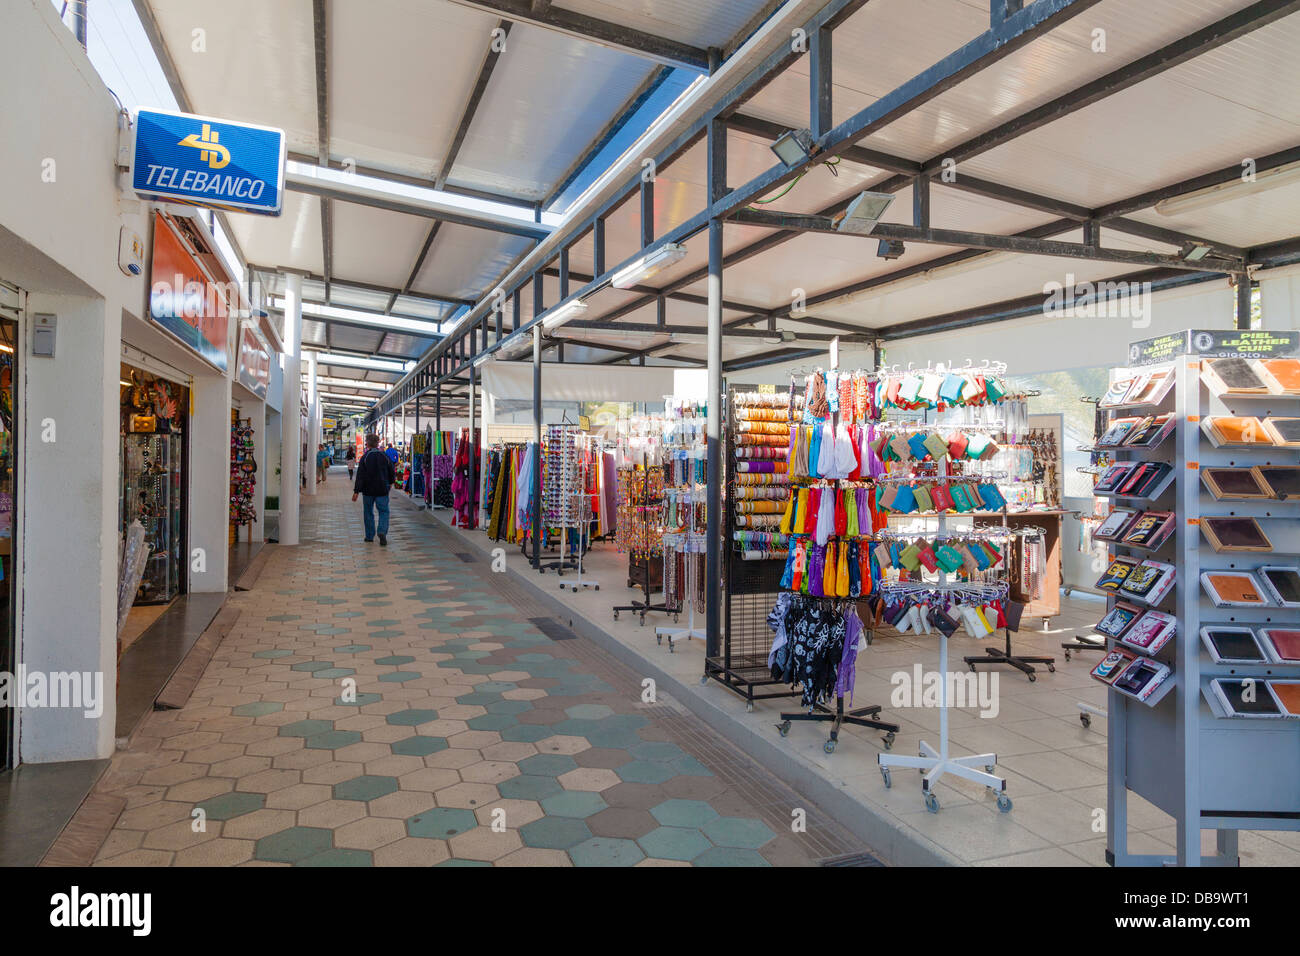 La Shops Stock Photos & La Shops Stock Images - Alamy